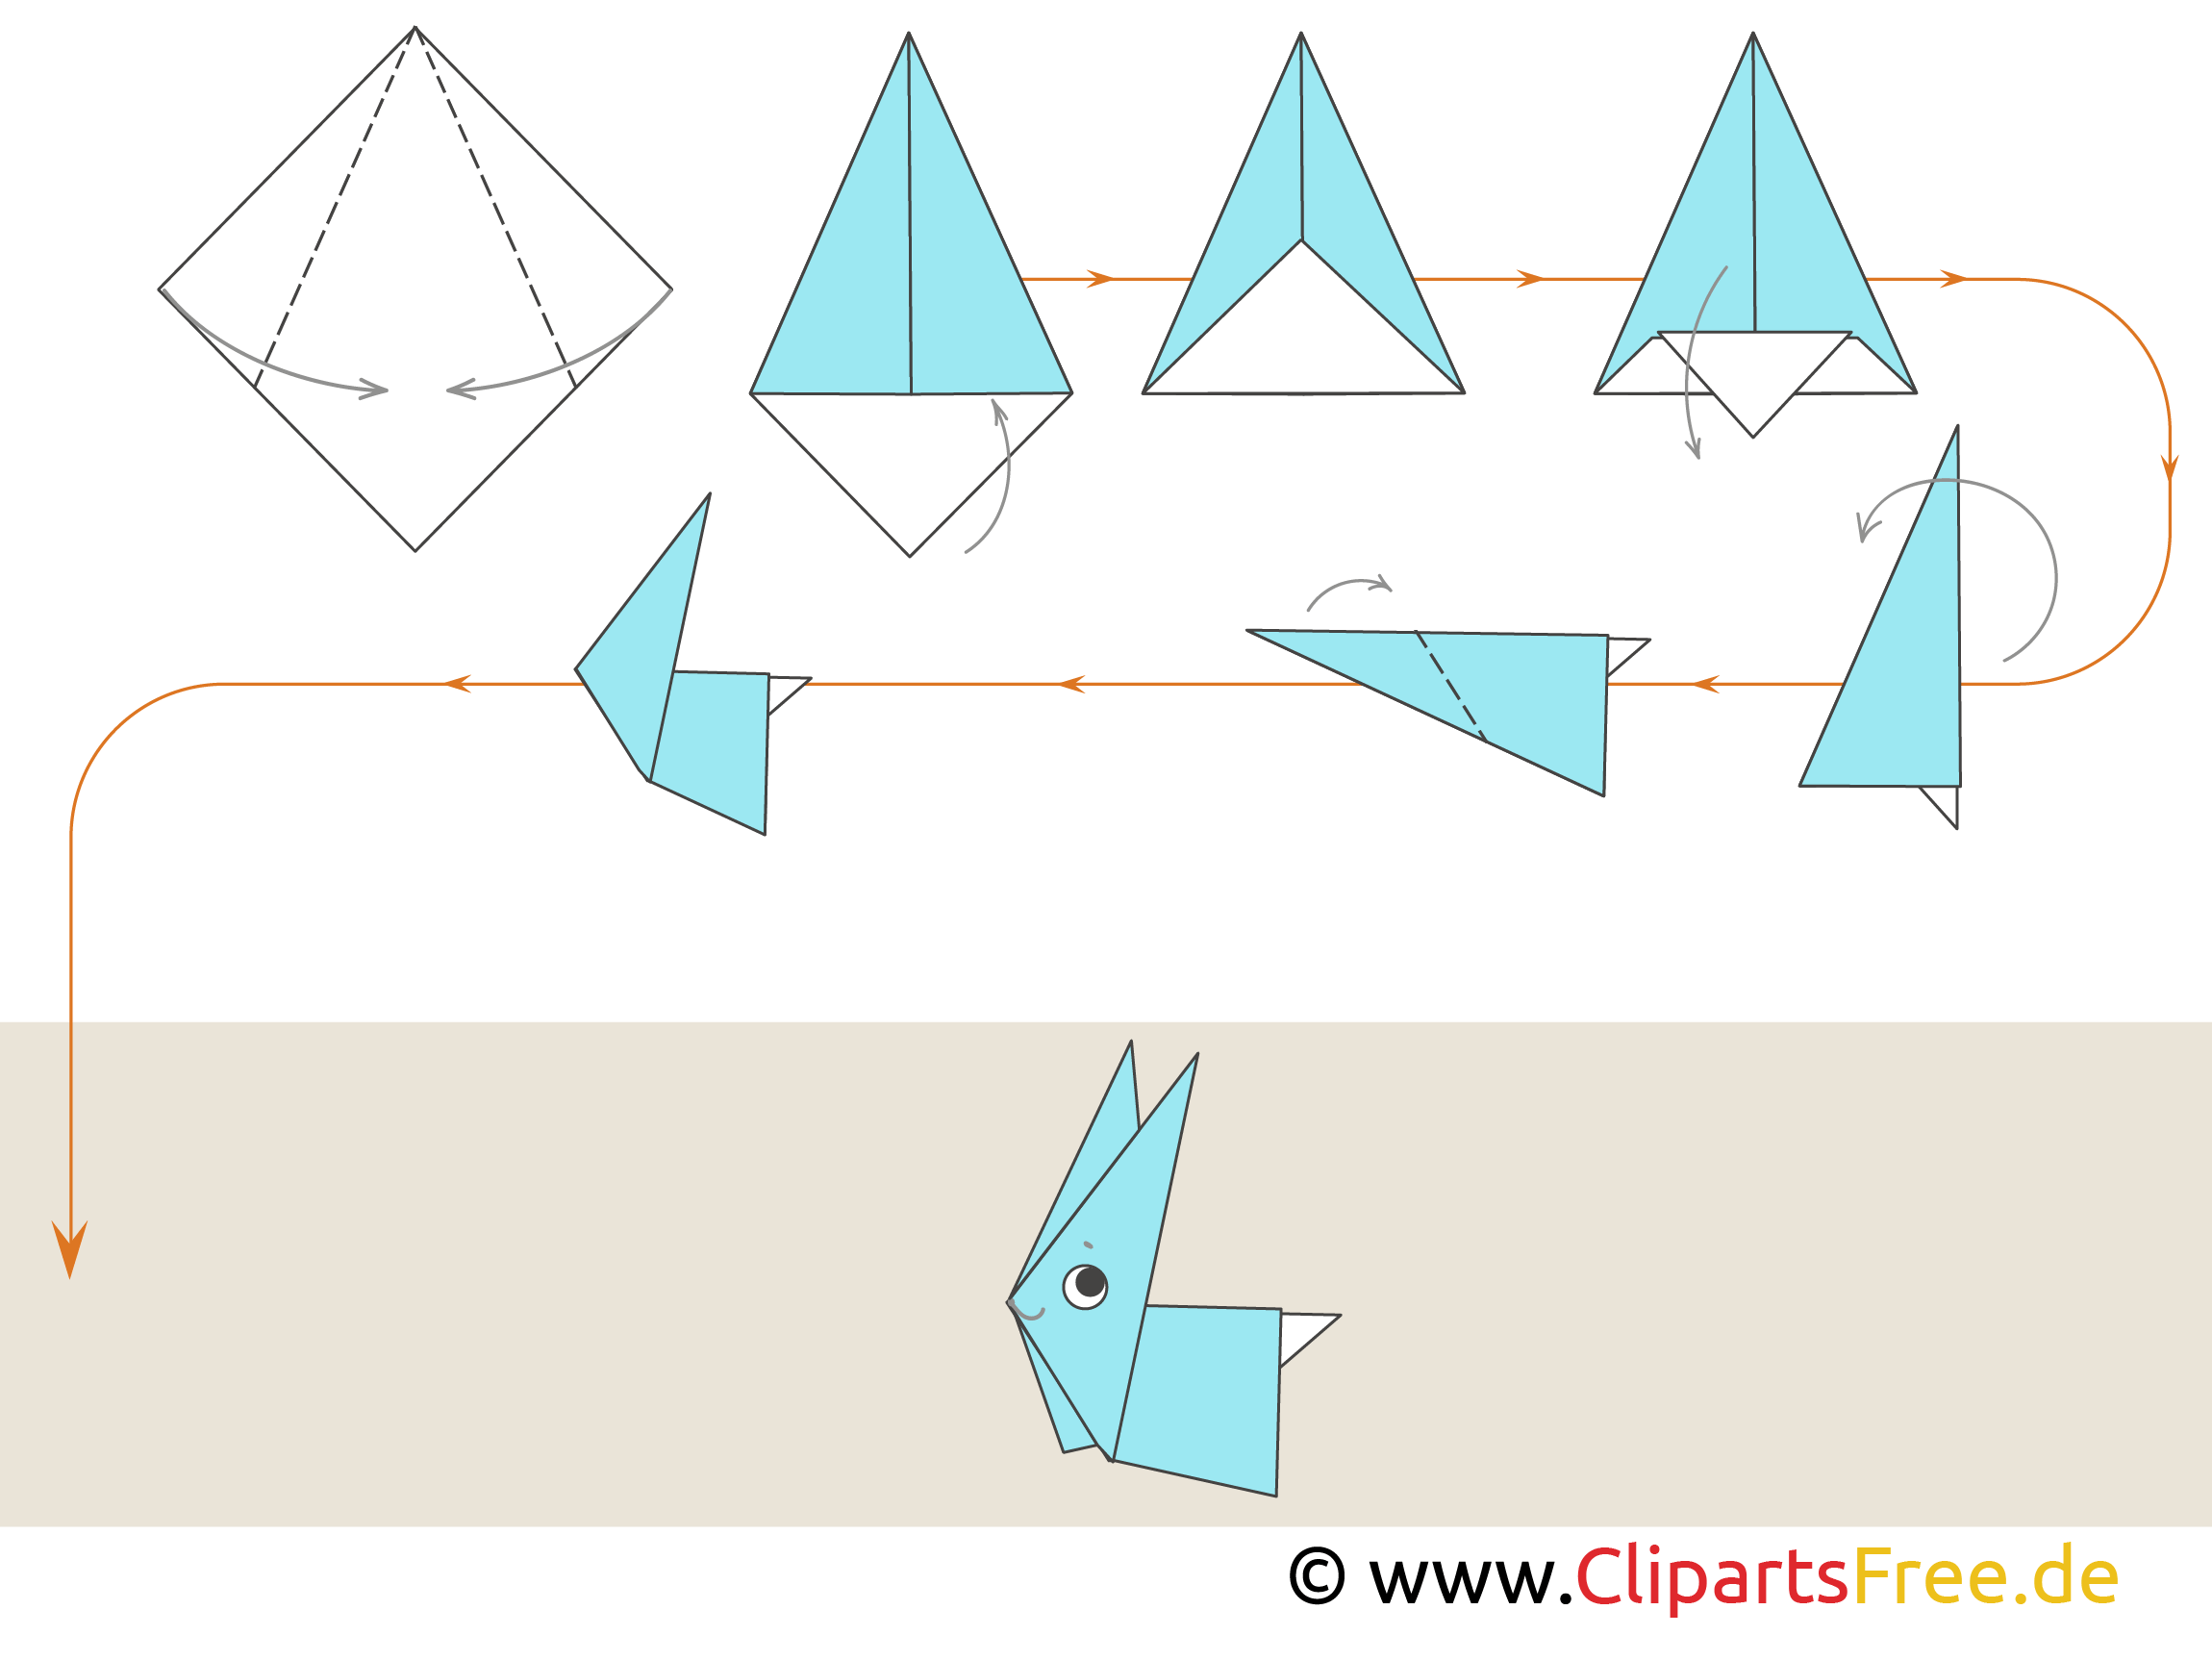 Bastelanleitung Hase Anleitung Origami Tiere Hase